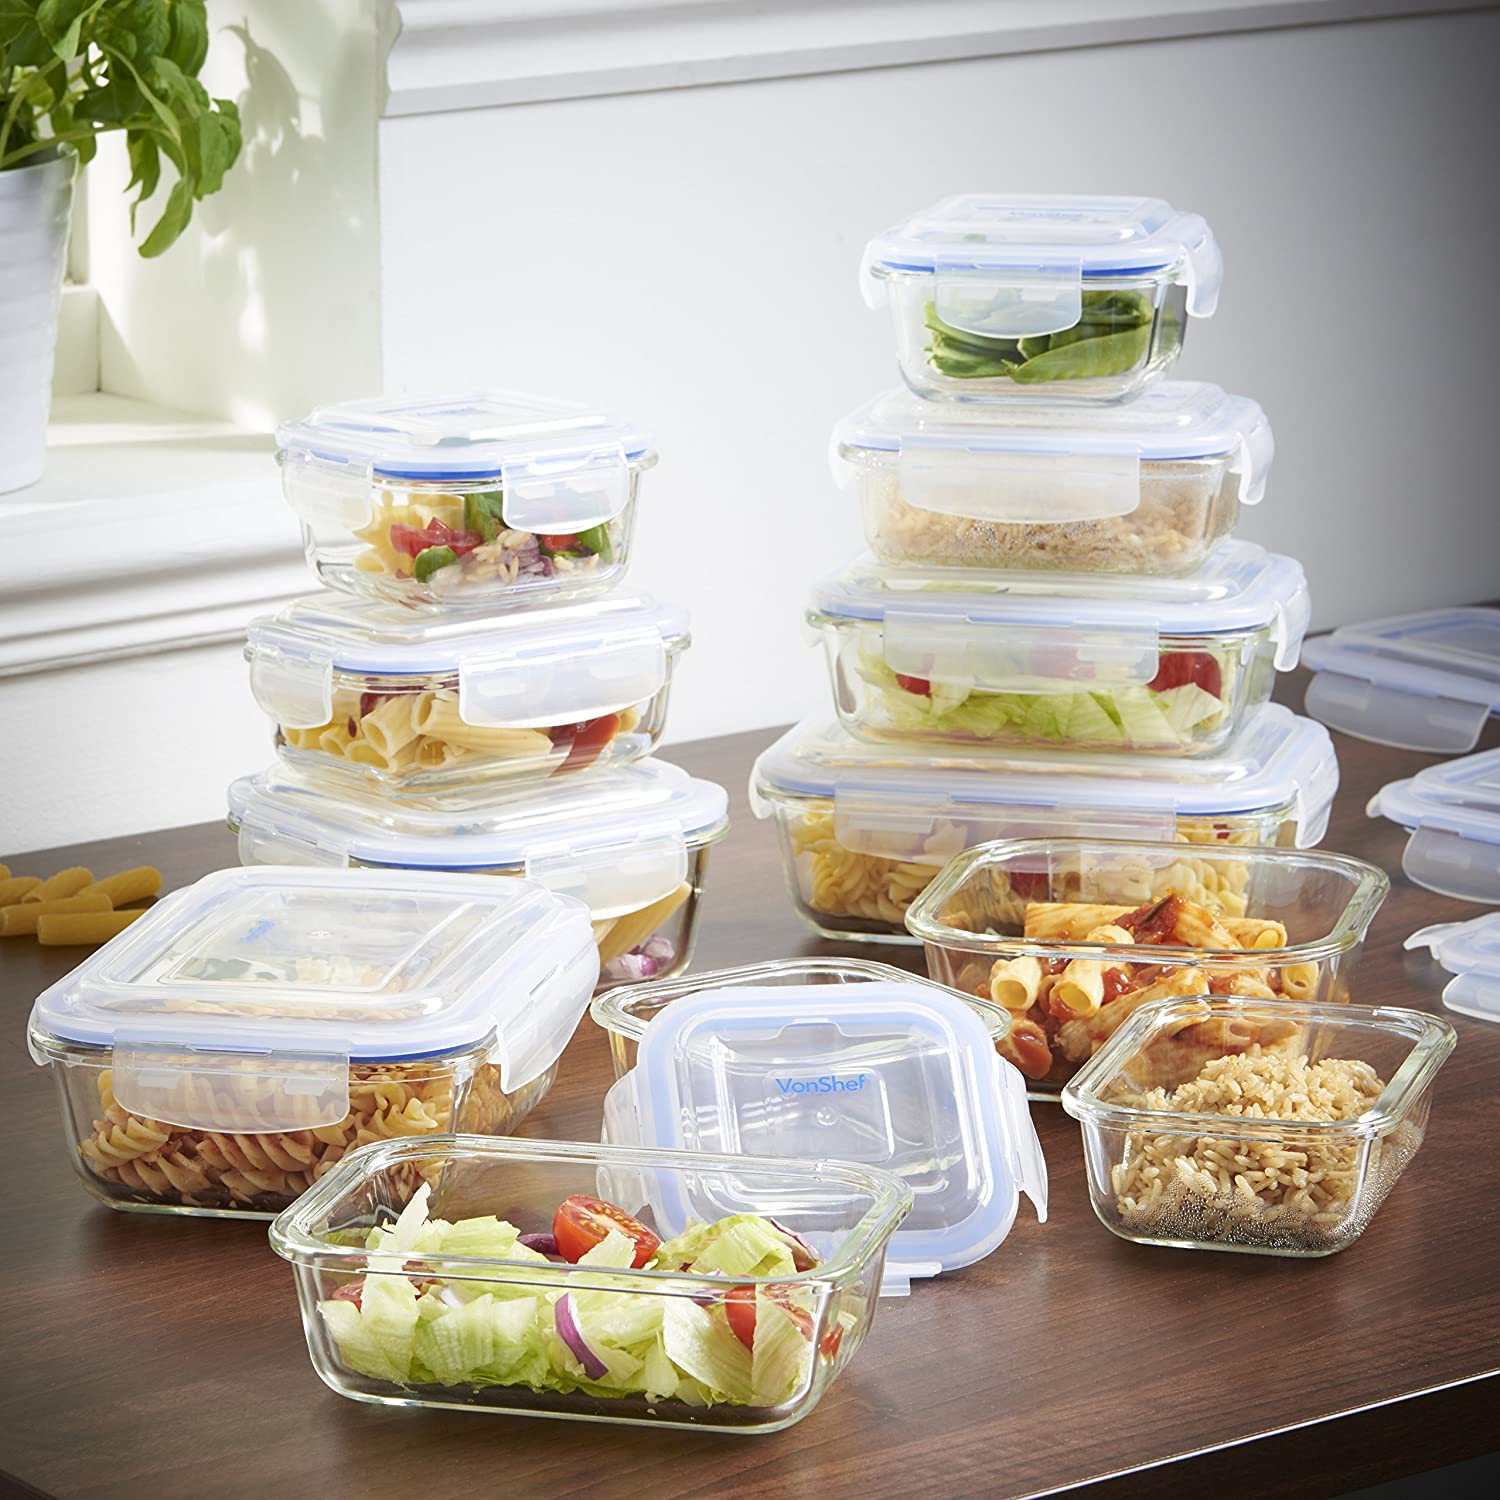 Amazon.com: VonShef Glass Container Food Storage Set with non BPA ...